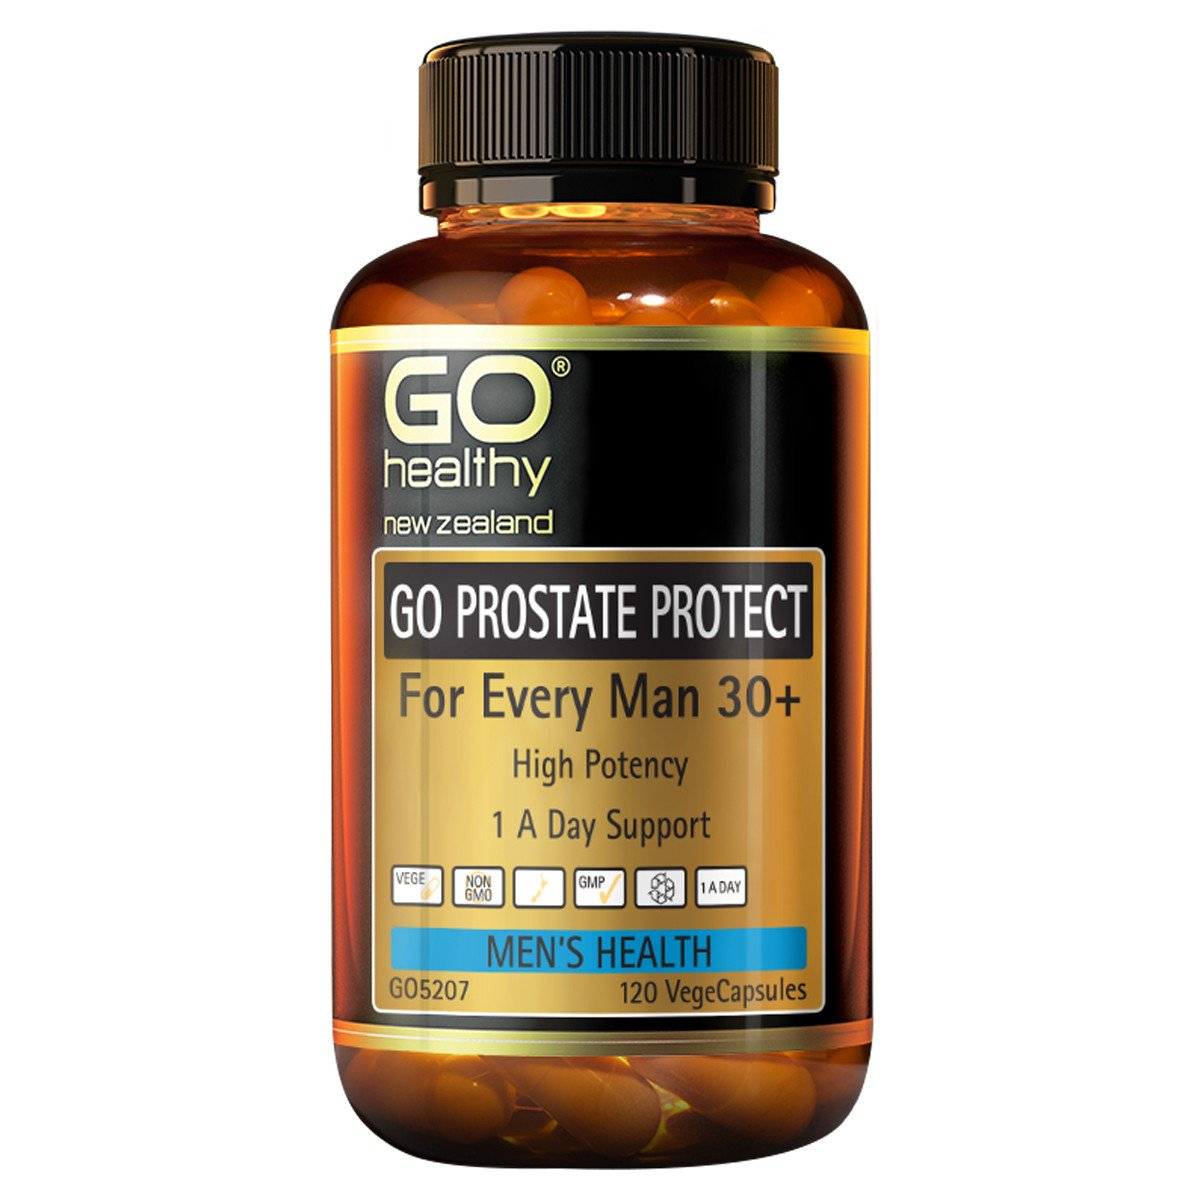 GO Healthy GO Prostate Protect 120 Vege caps